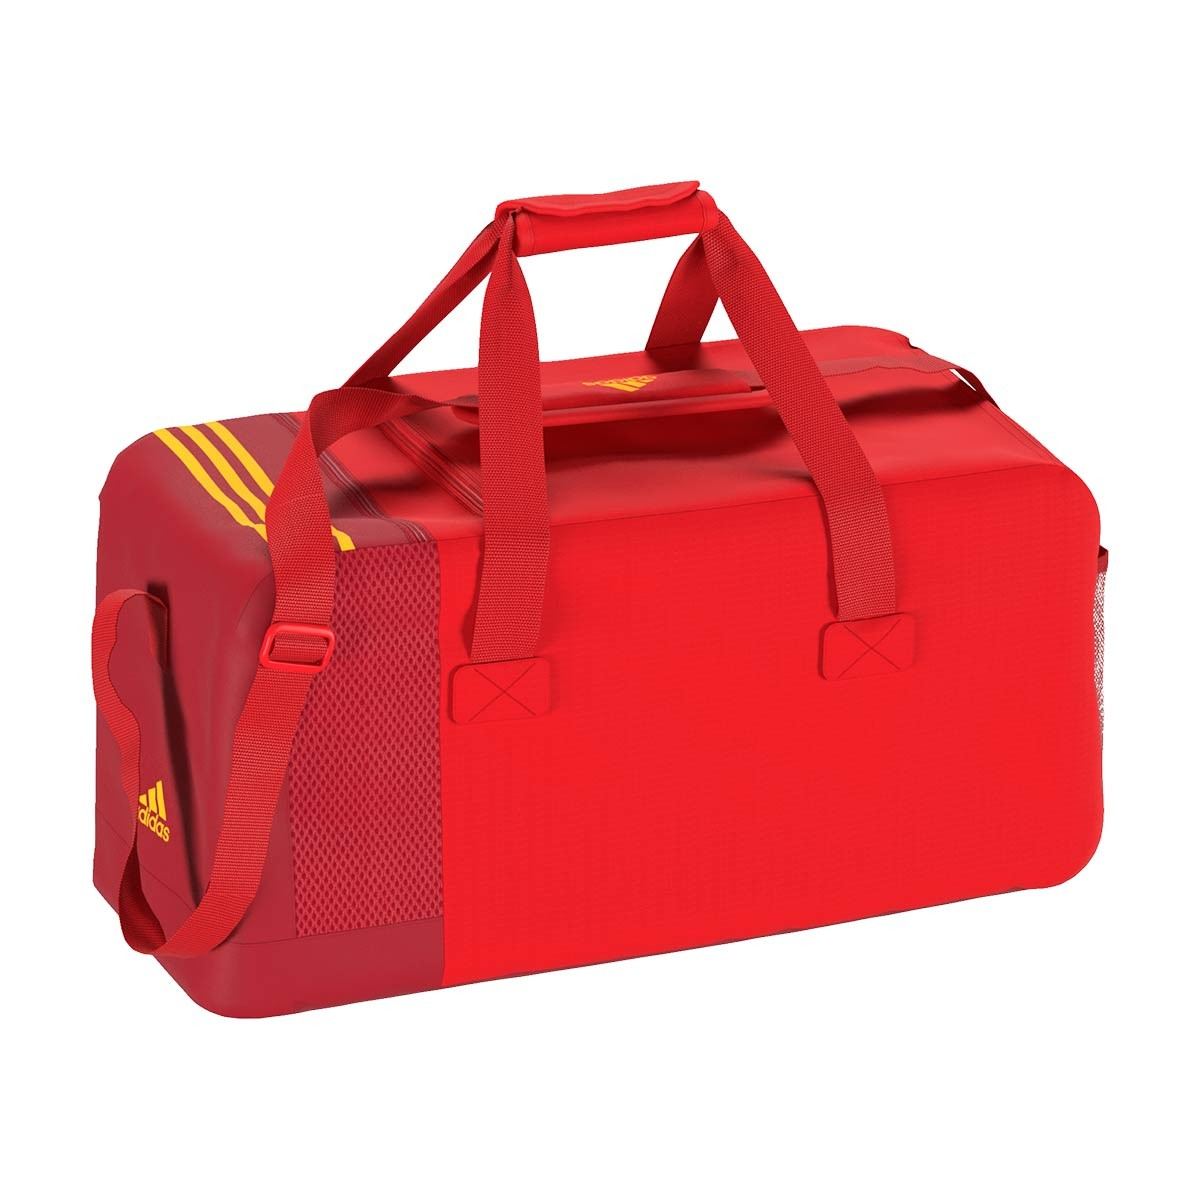 989511eb3a Bag adidas Spain 2017-2018 Power red-Gold - Football store Fútbol ...